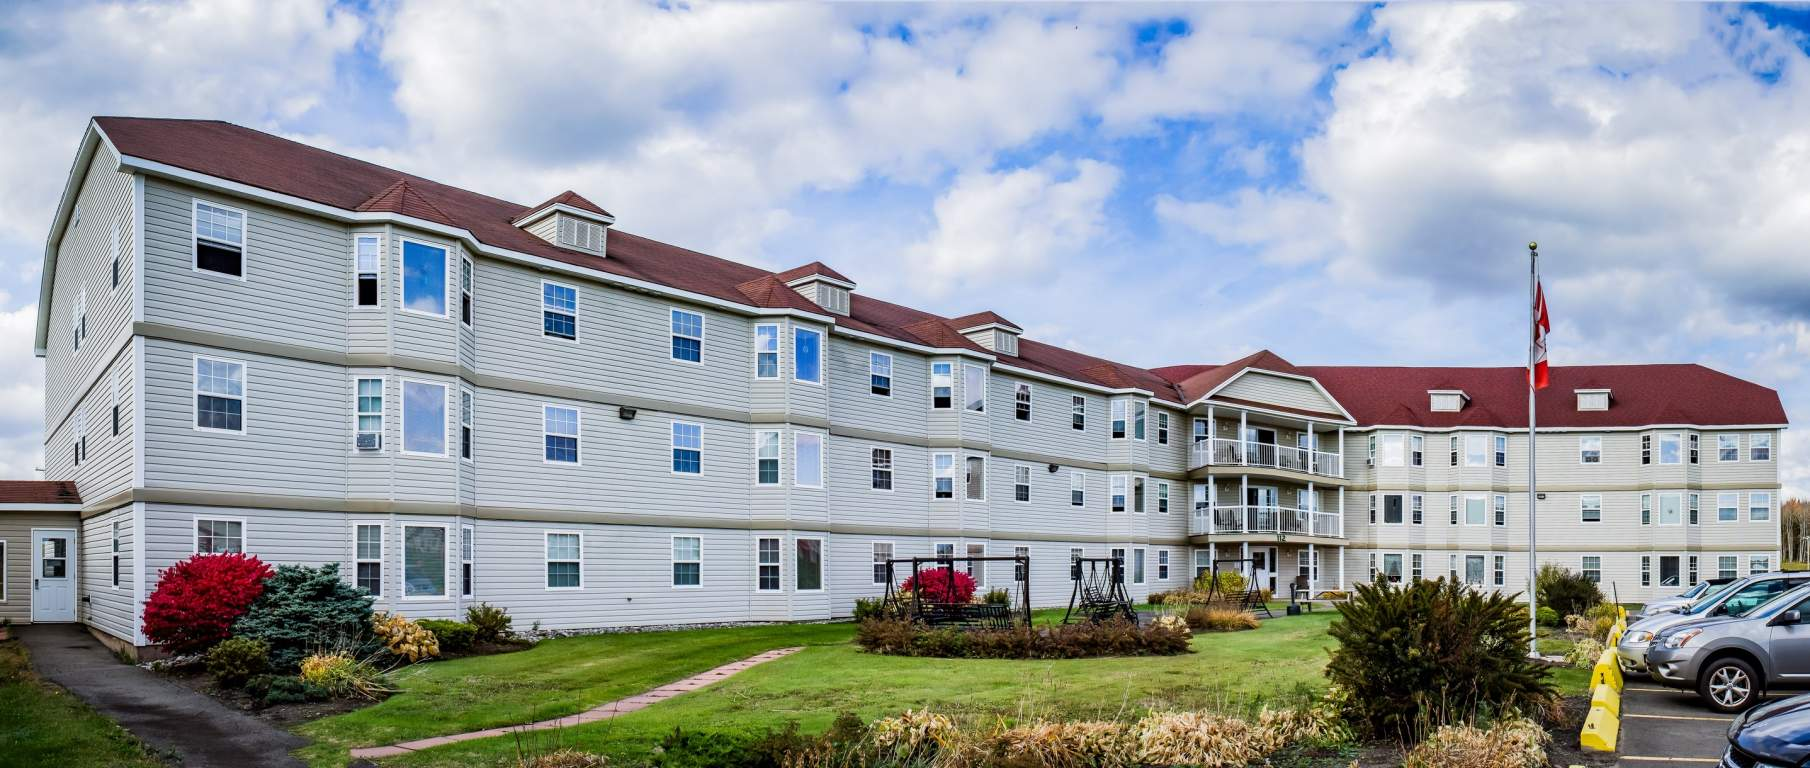 112 Murphy | 112 Murphy Ave | Moncton Apartments | Northview ...